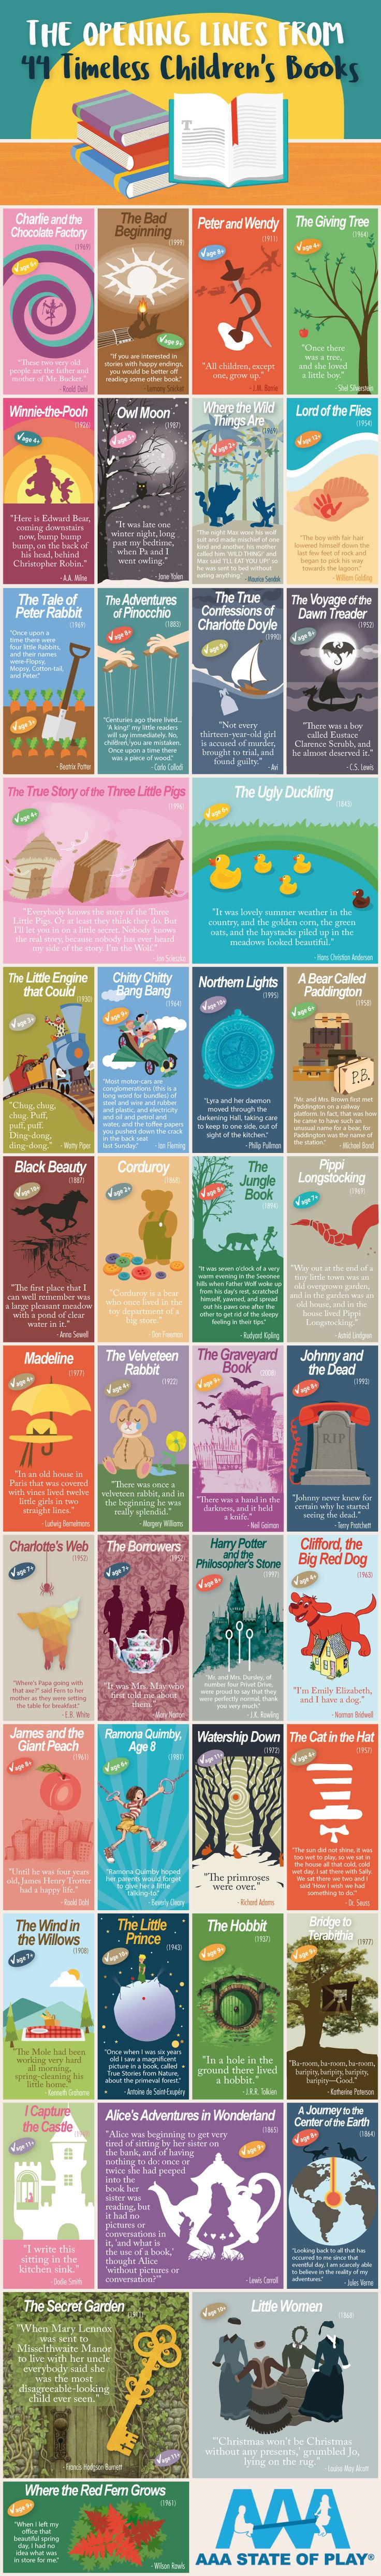 The Opening Lines From 44 Timeless Children's Books  Aaastateofplay  Graphic